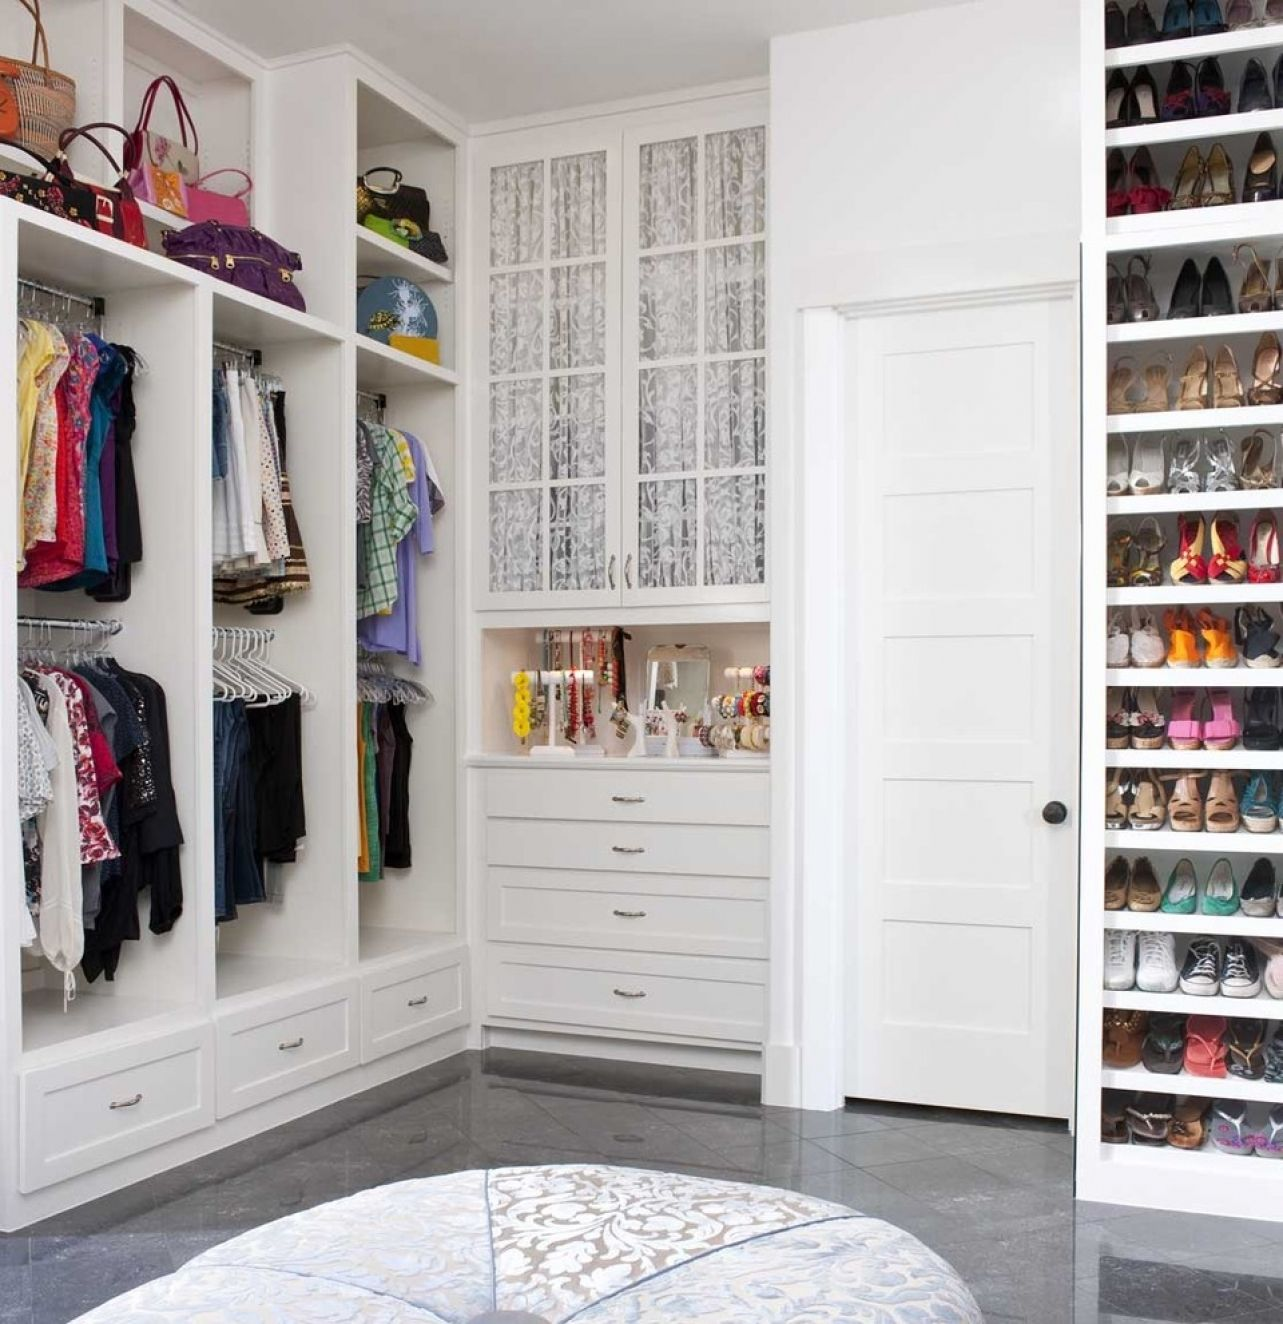 Delicieux 5 X 7 Walk In Closet Design   Best Paint For Interior Walls